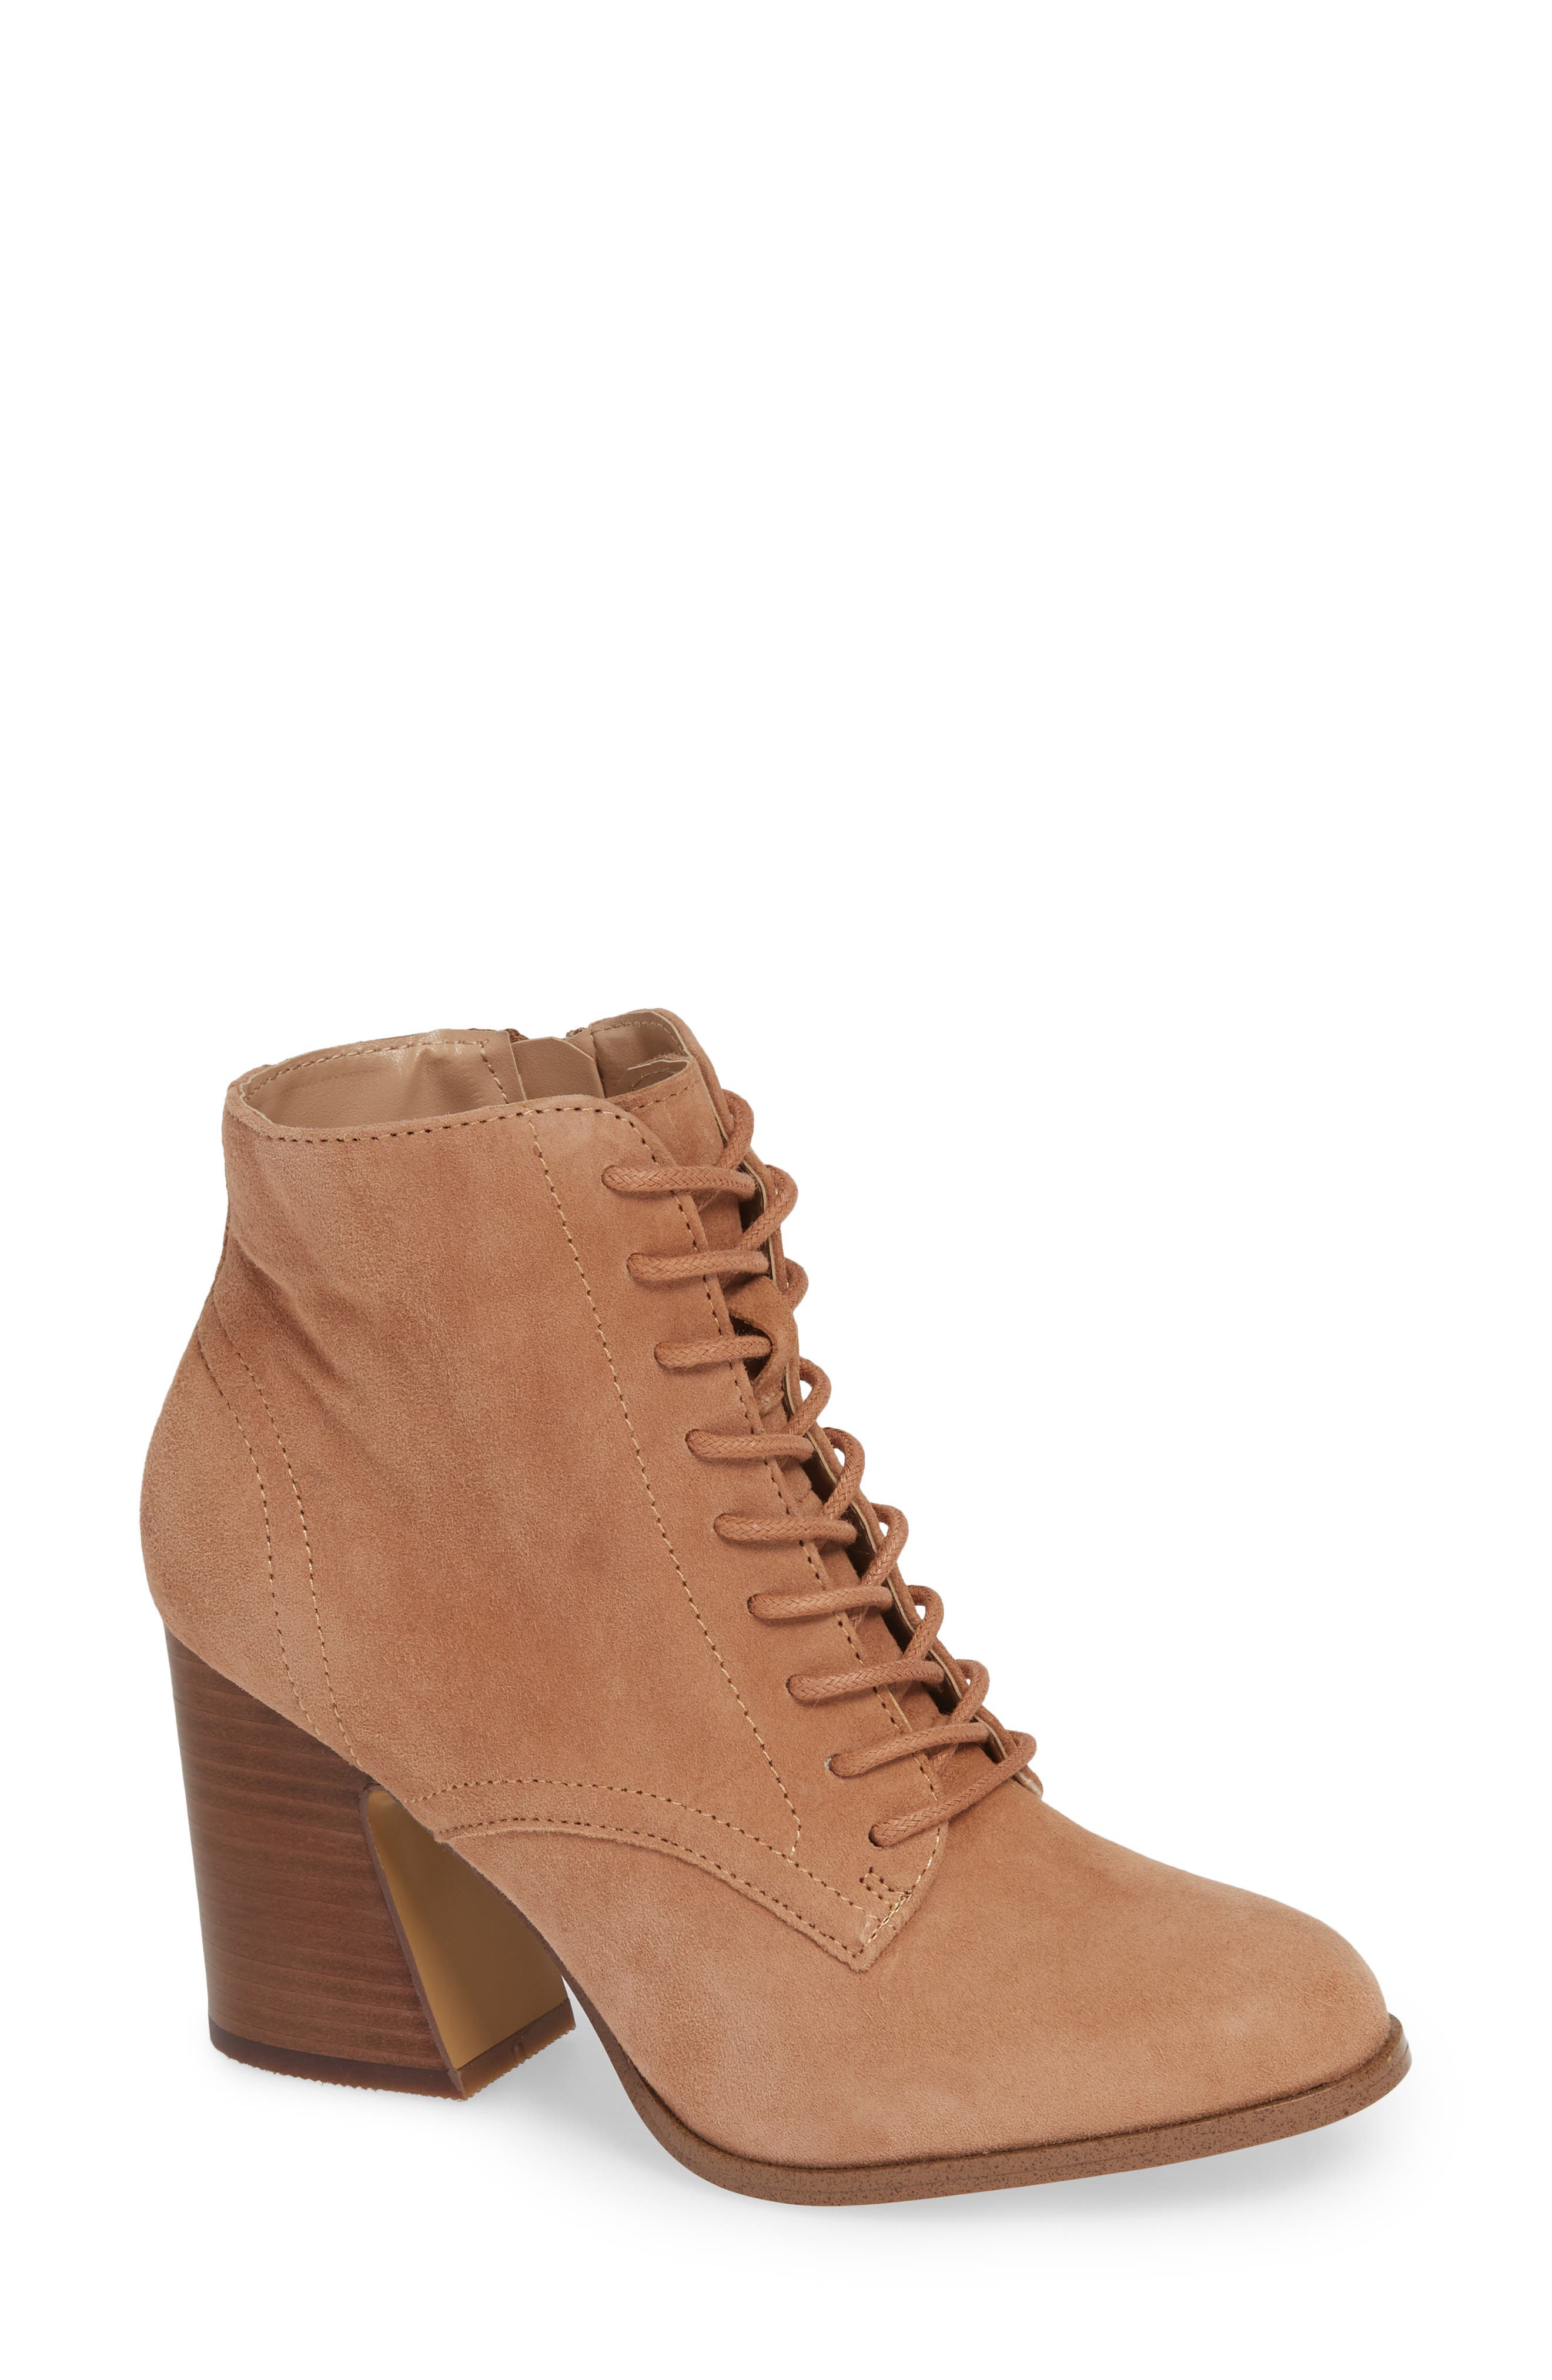 KENSIE Smith Lace-Up Bootie in Nude Suede